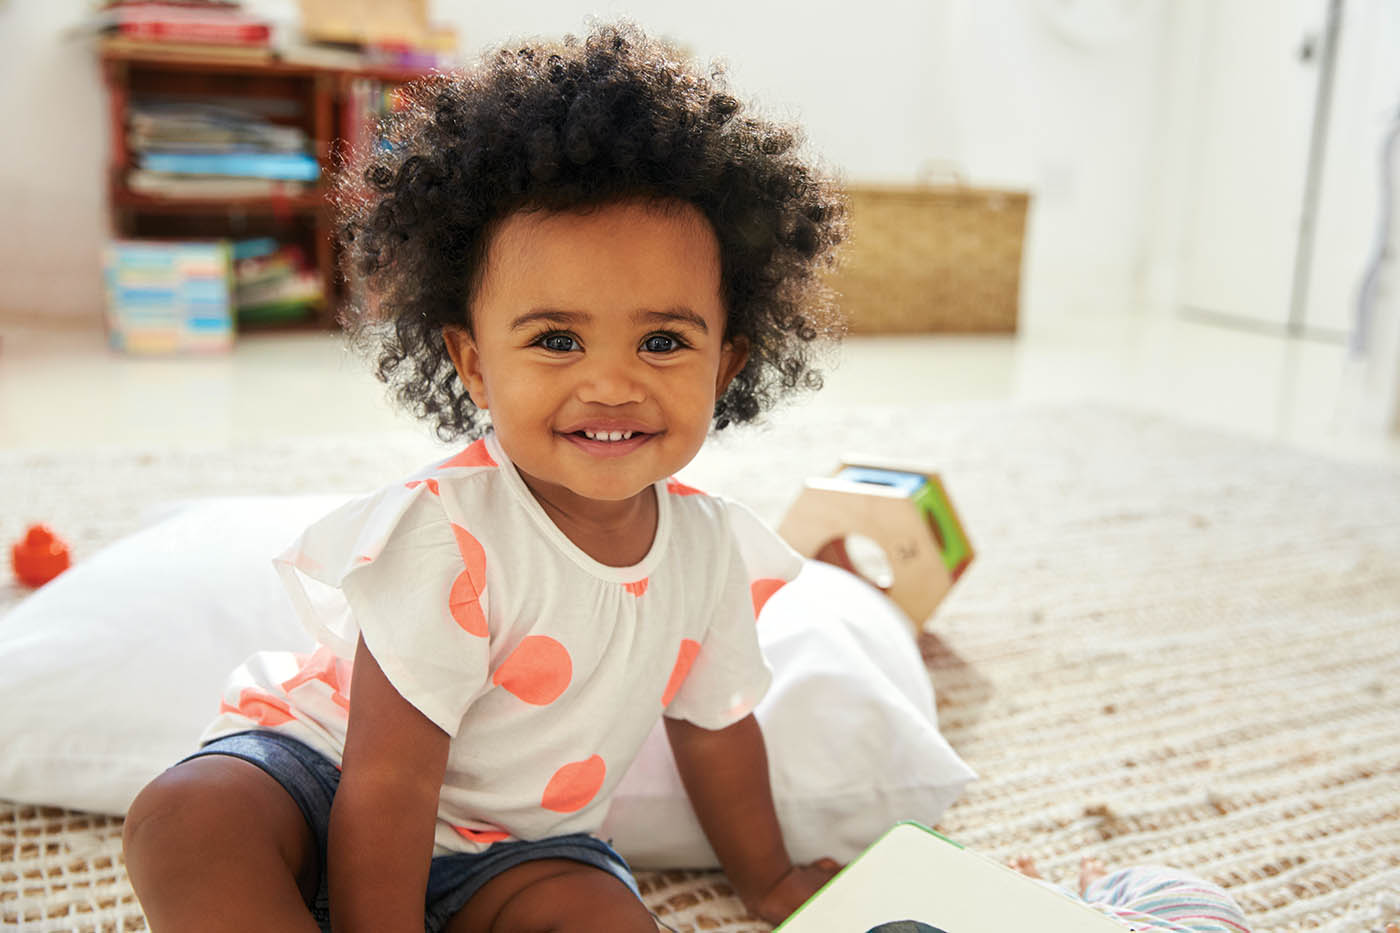 SPECIAL EVENT RECAP: Building ideal learning environments for children of color